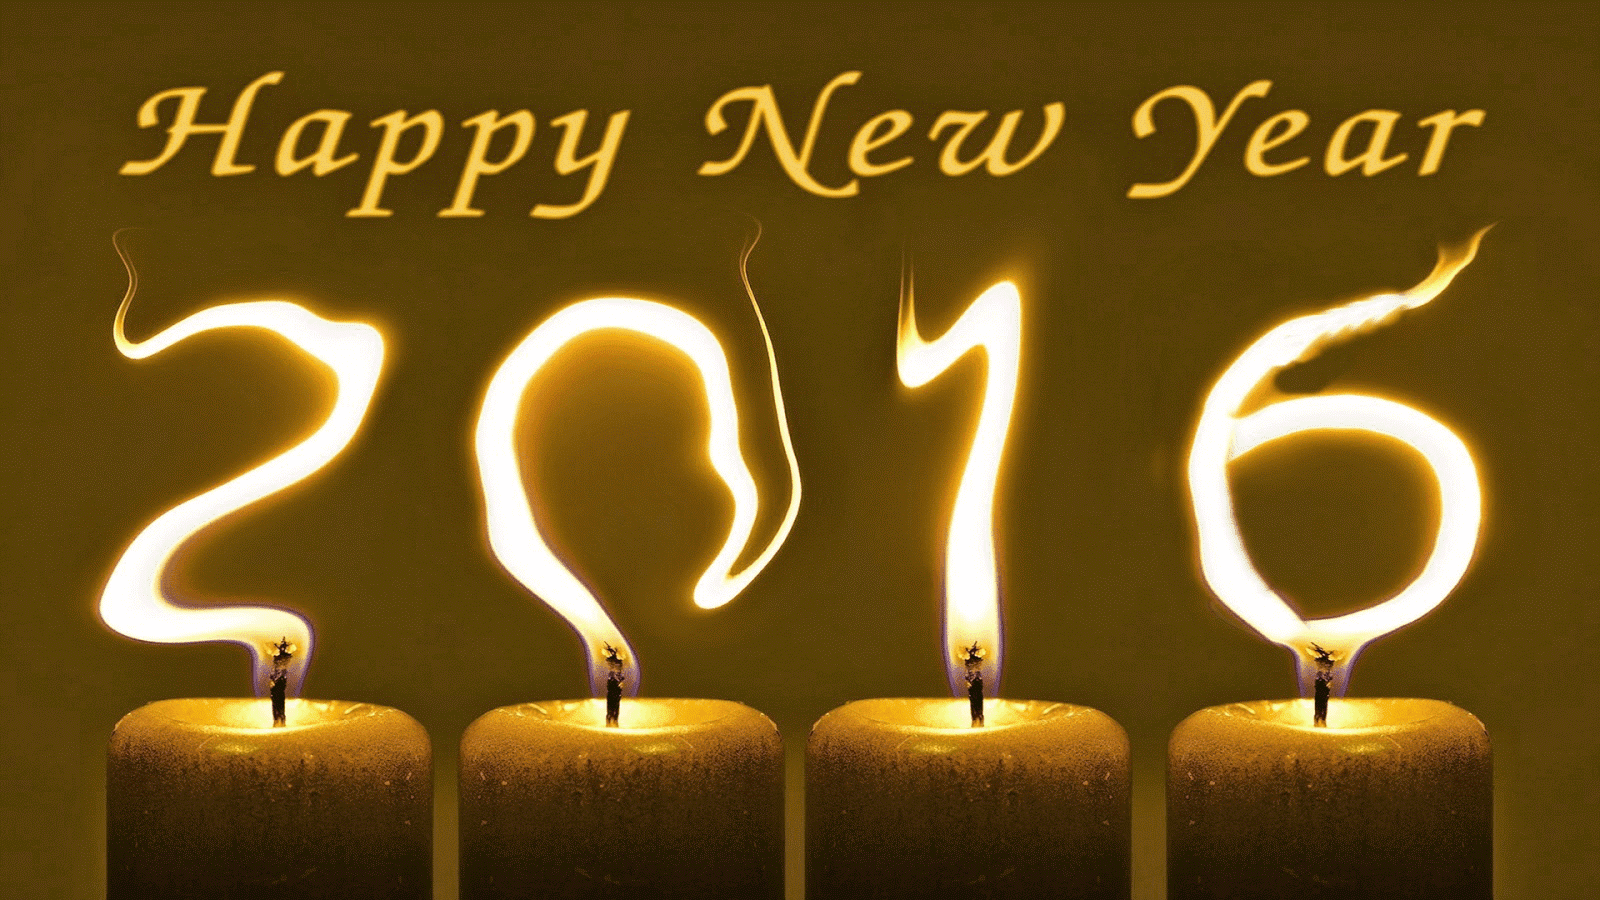 Happy new year 2017 wallpapers hd download free 1080p for New design wallpaper 2016